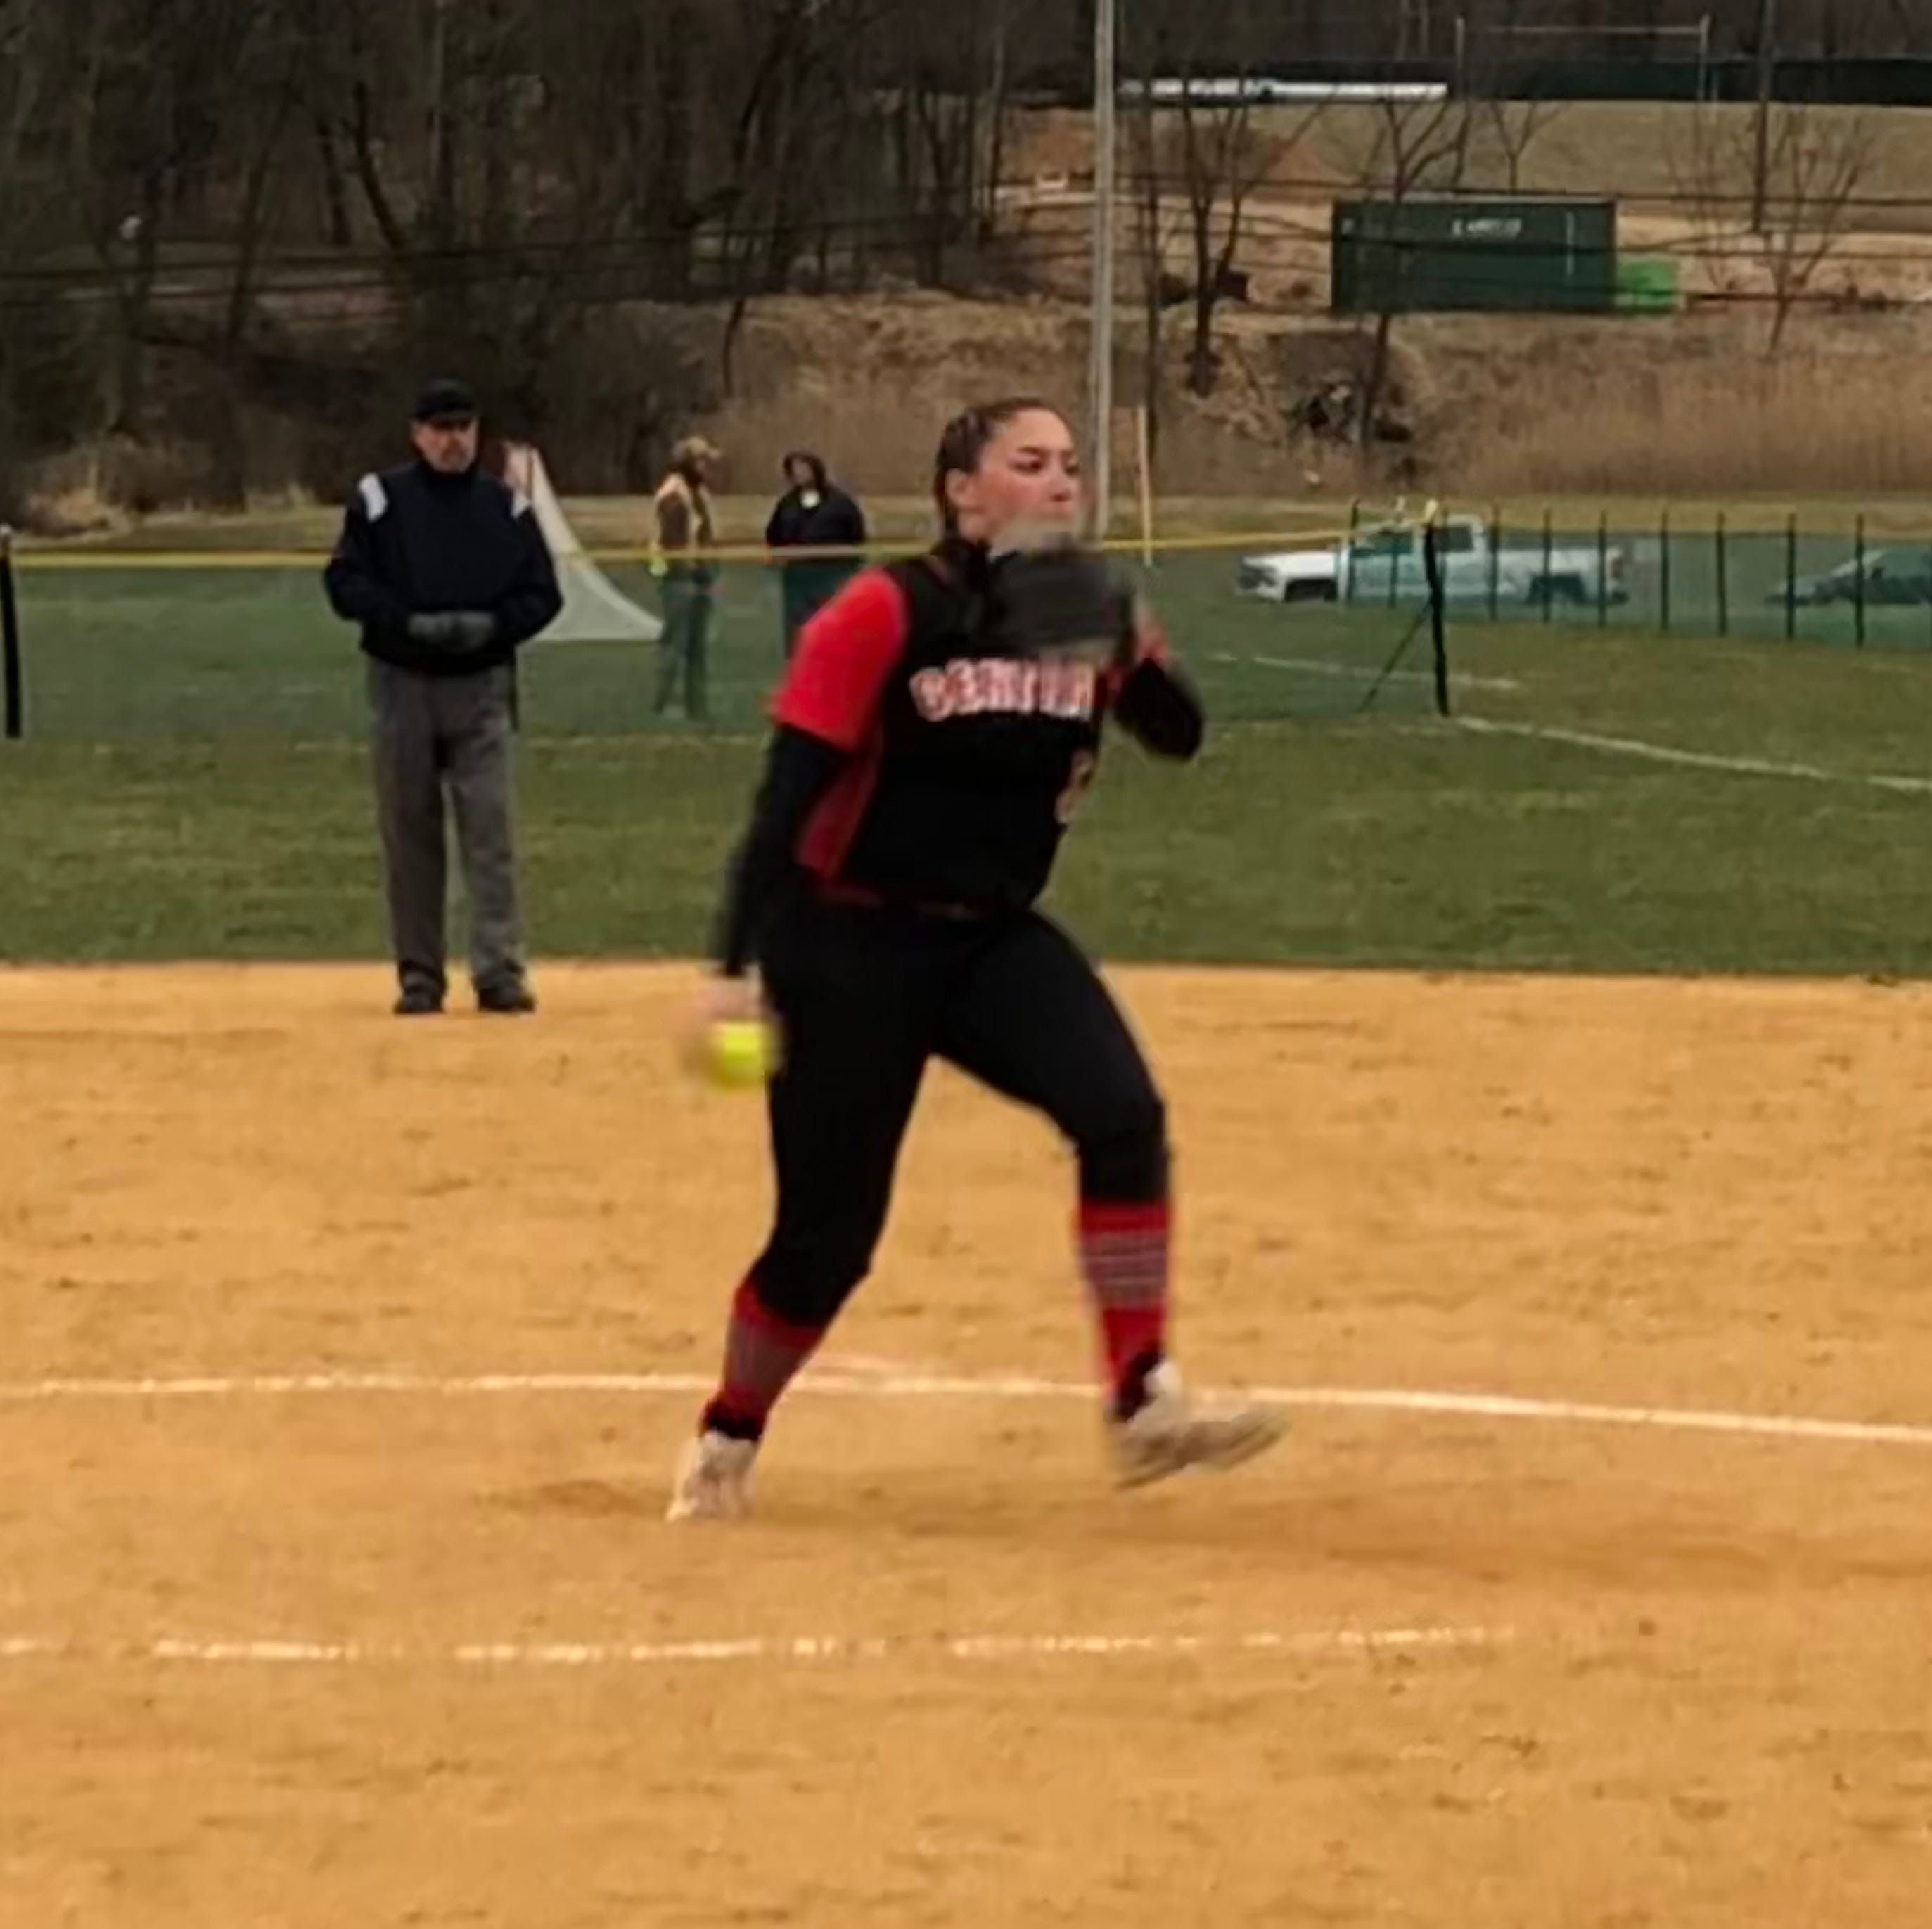 NJ softball CN-area roundup with analysis: Hunterdon Central blasts Watchung Hills, South Hunterdon 10-runs Bound Brook